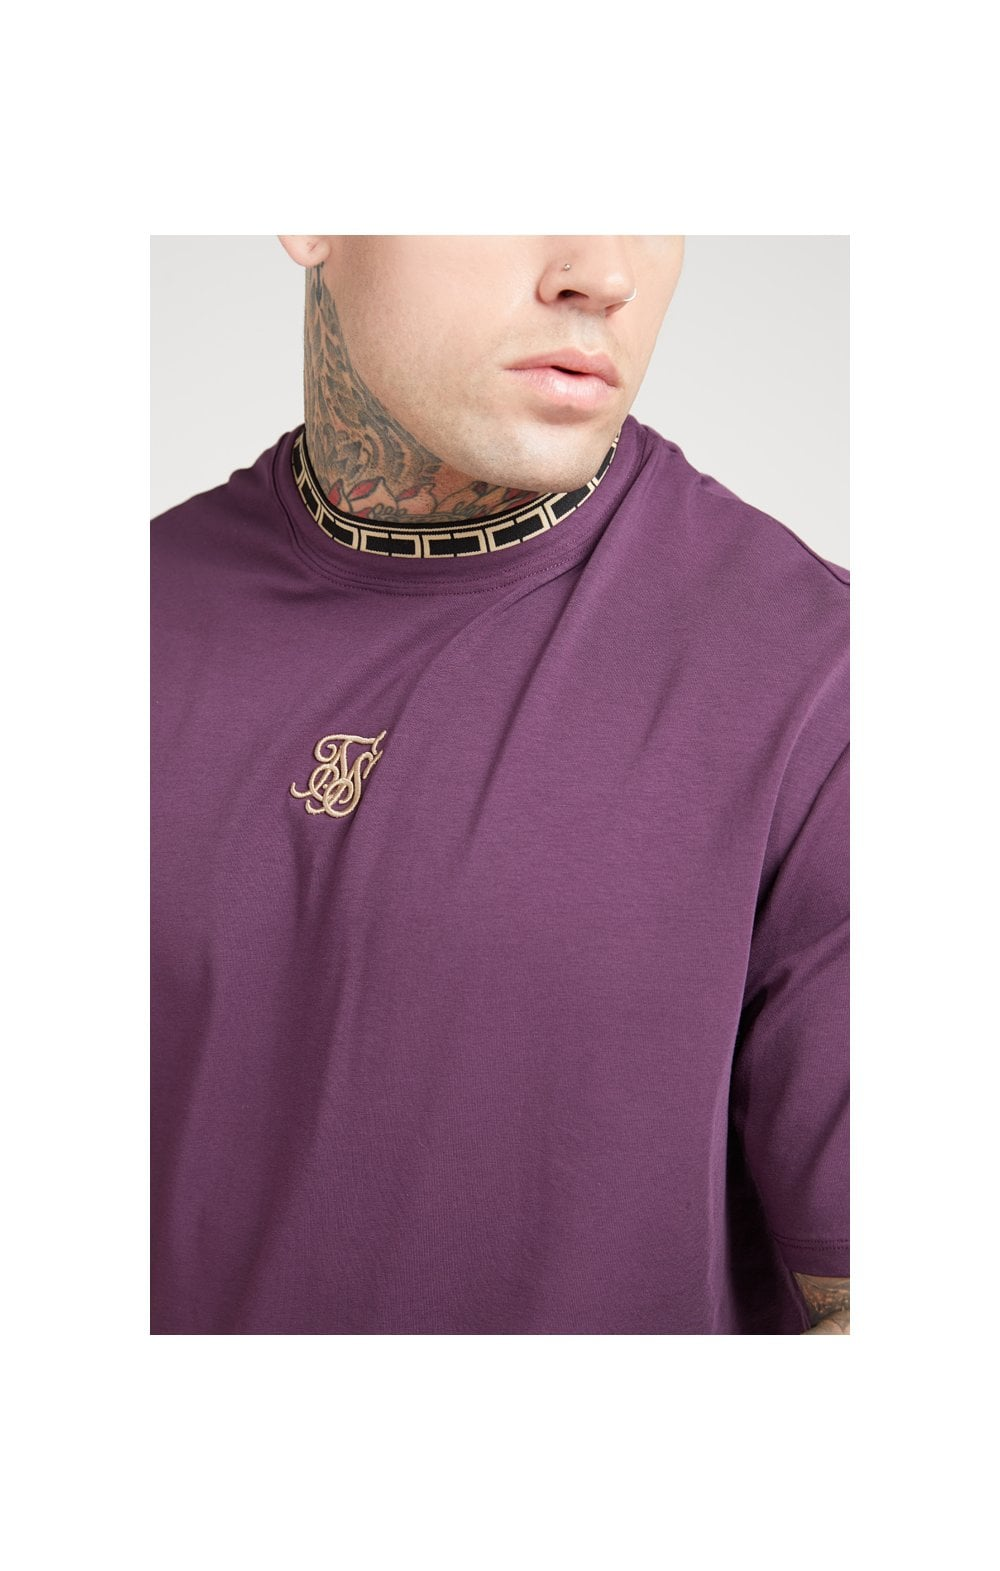 Load image into Gallery viewer, SikSilk Tape Collar Essential Tee - Burgundy & Gold